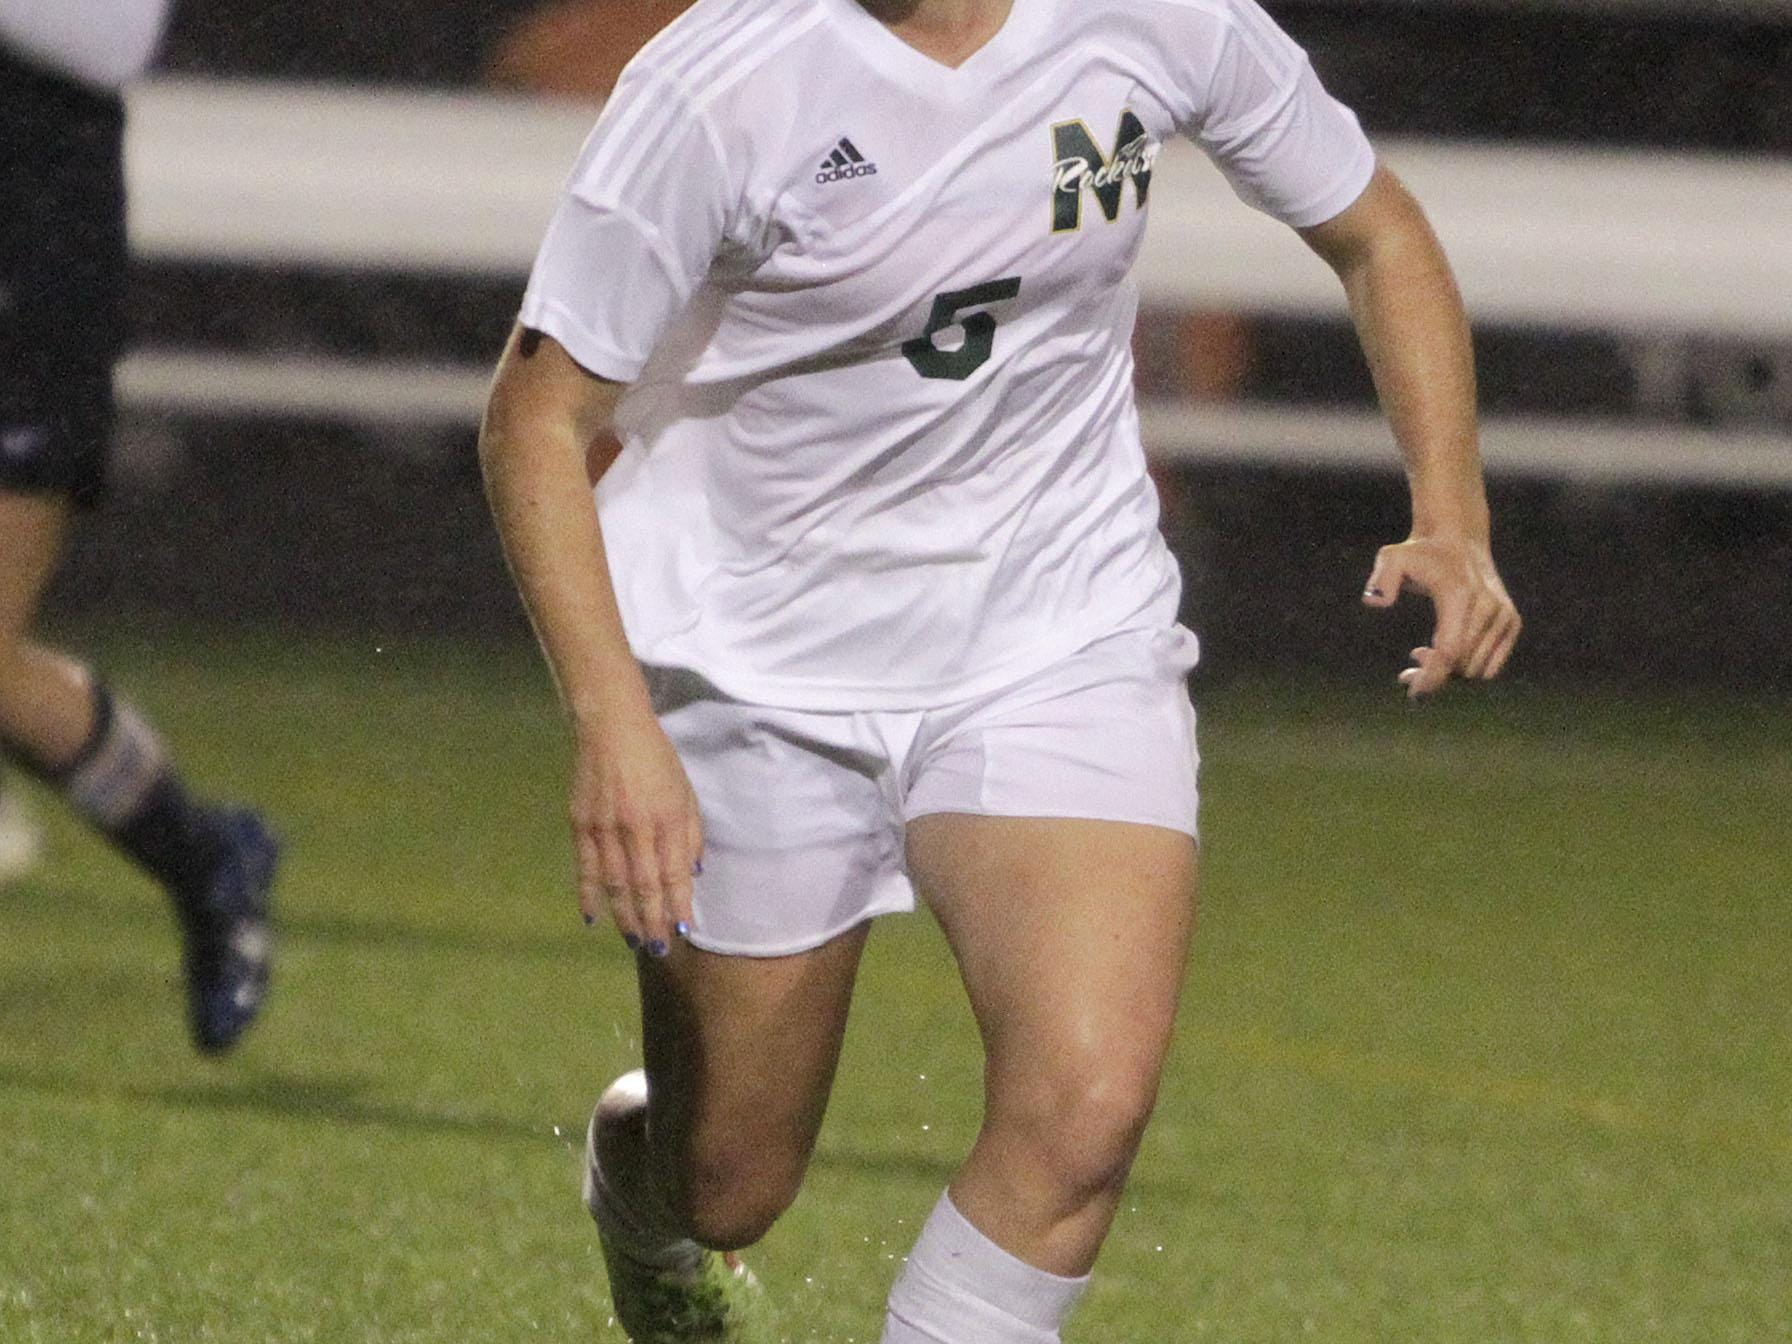 McNicholas' Sophie Gorman led the GCL Coed division in scoring with 16 goals and a total of 41 points and helped McNicholas win its first girls' soccer state championship.